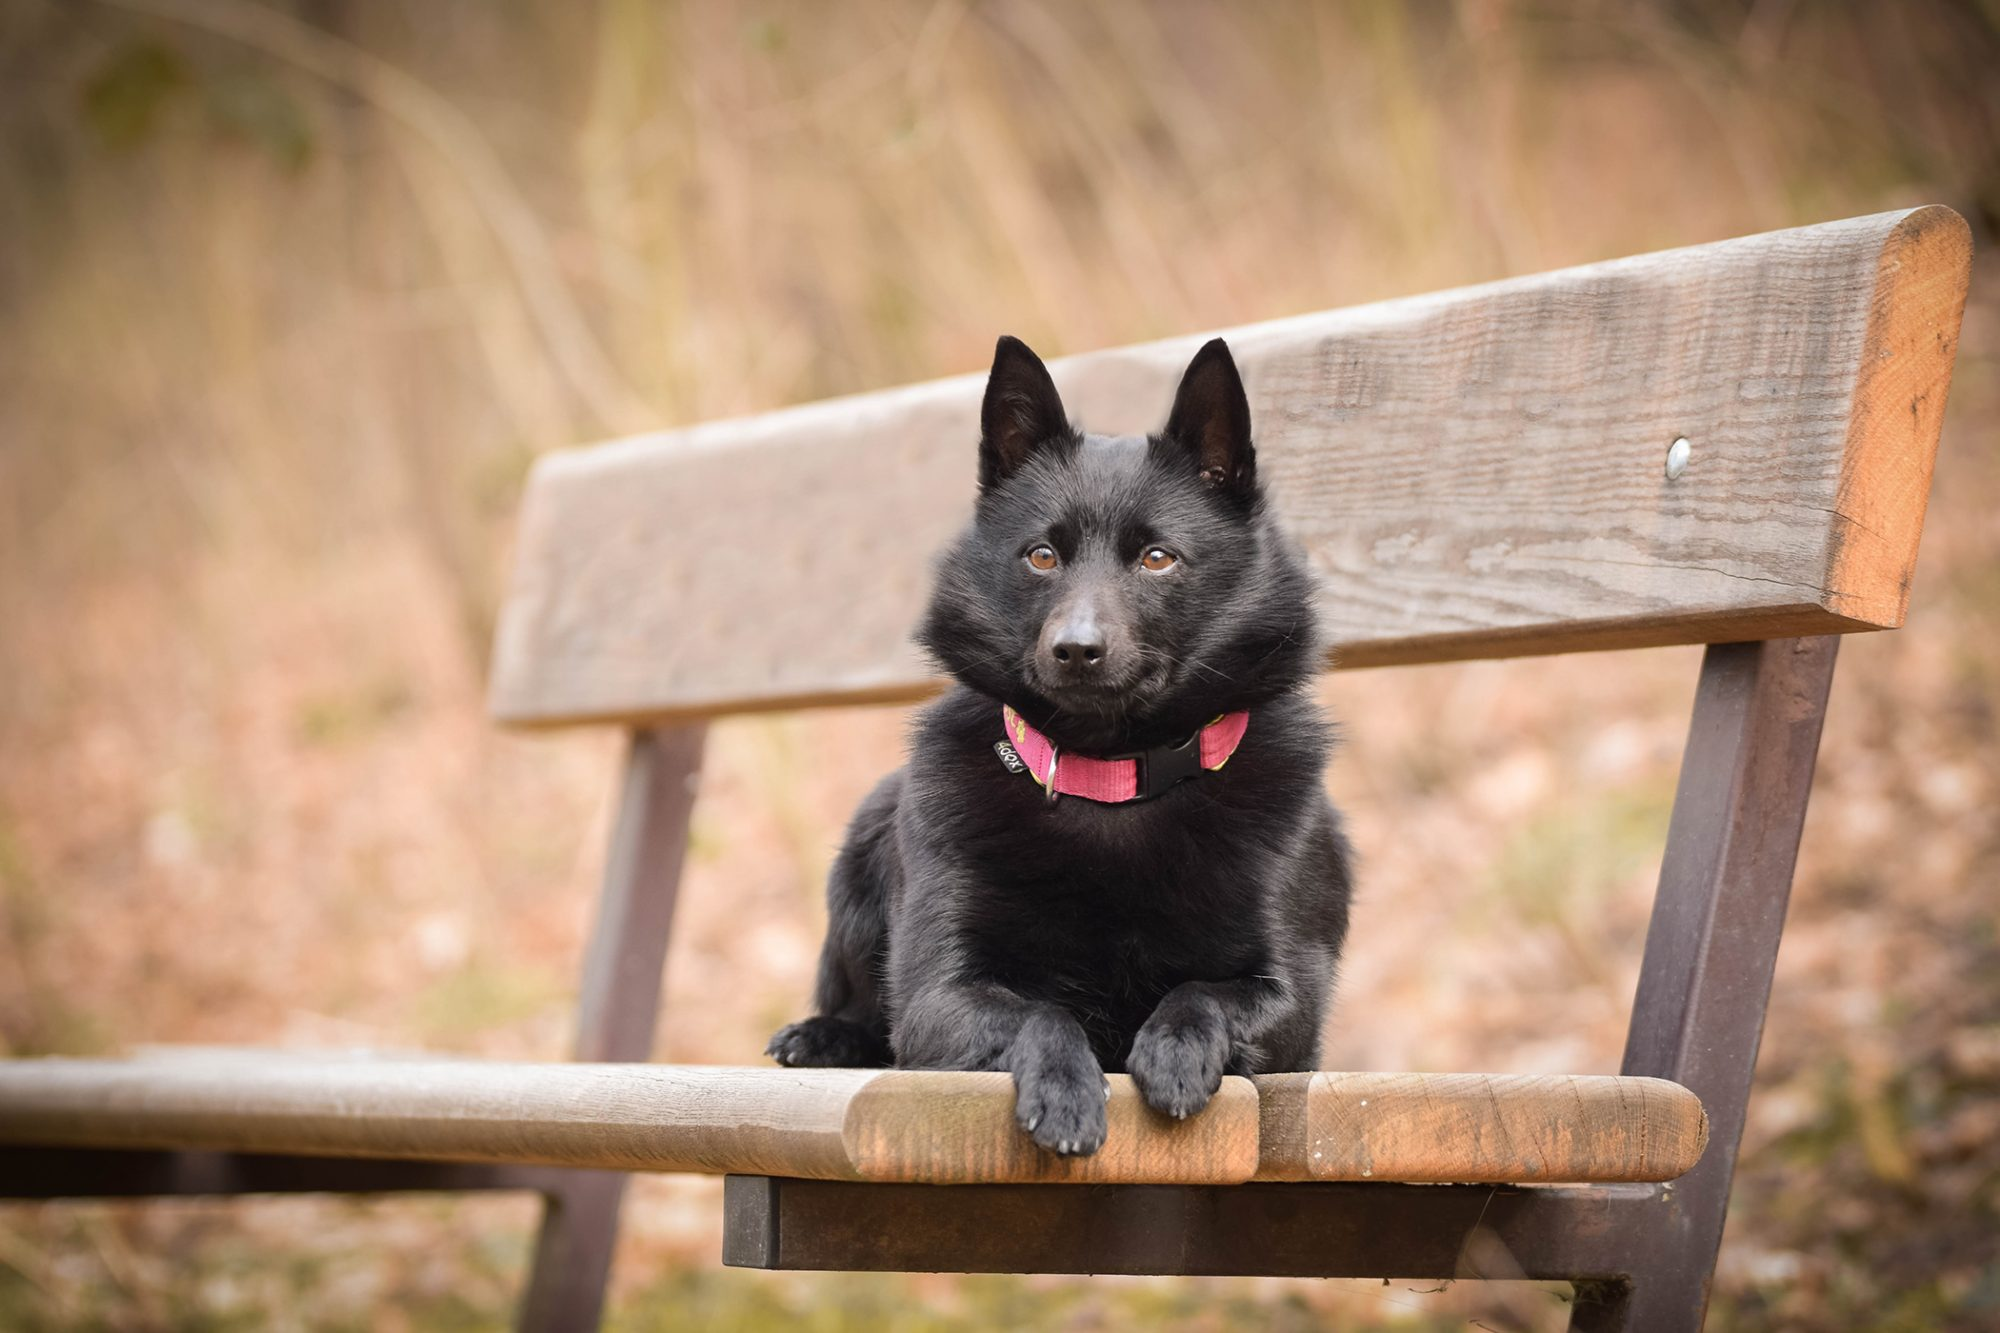 Schipperke dog with pink collar lays on wooden bench